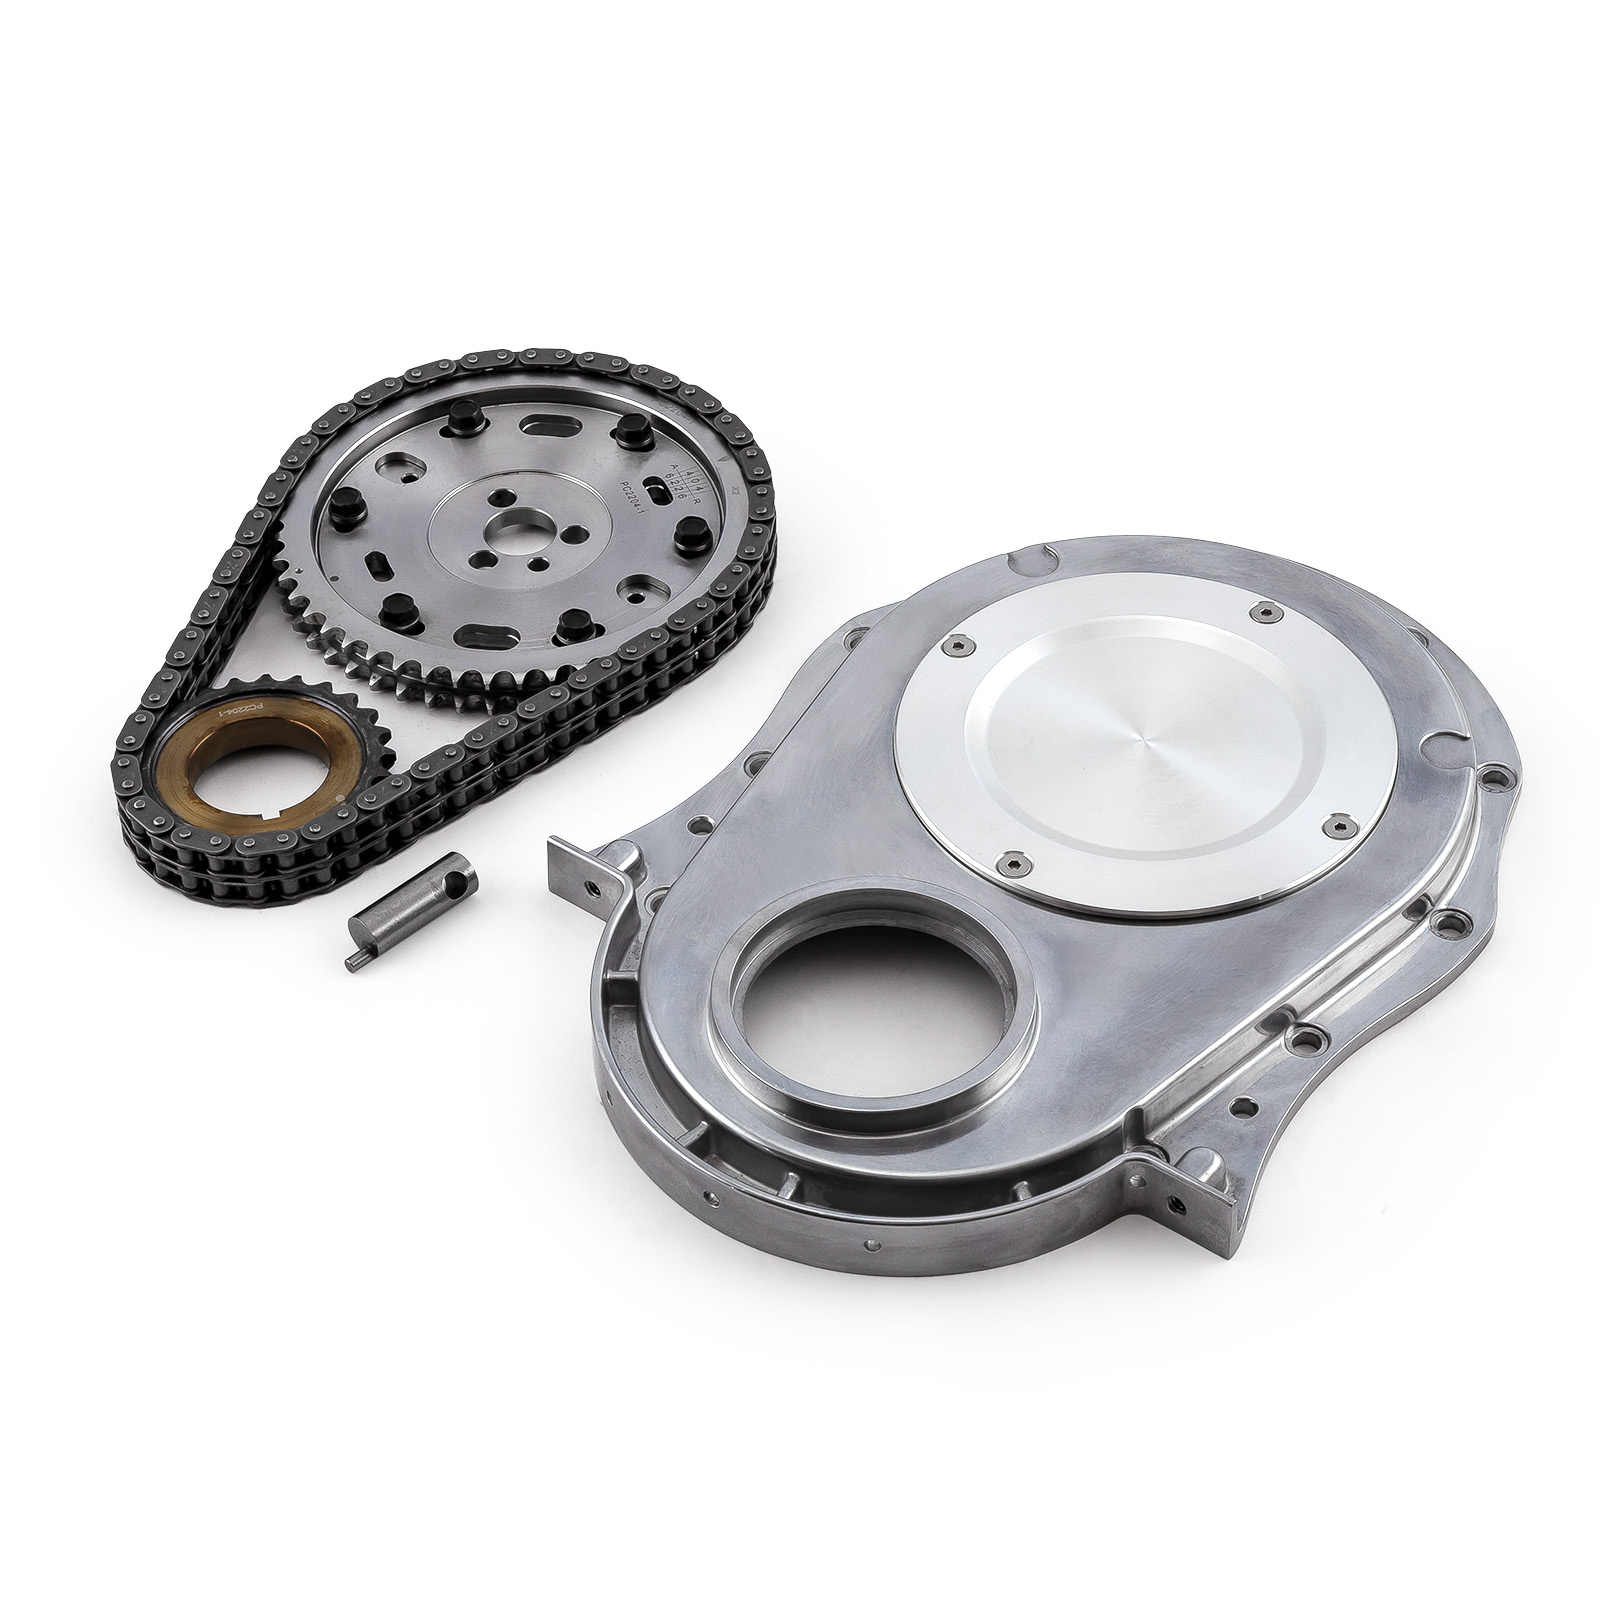 Chevrolet Performance 12562818 Timing Chain Cover: Chevy BBC 454 Double Roller 2pc Adj Billet Steel Timing